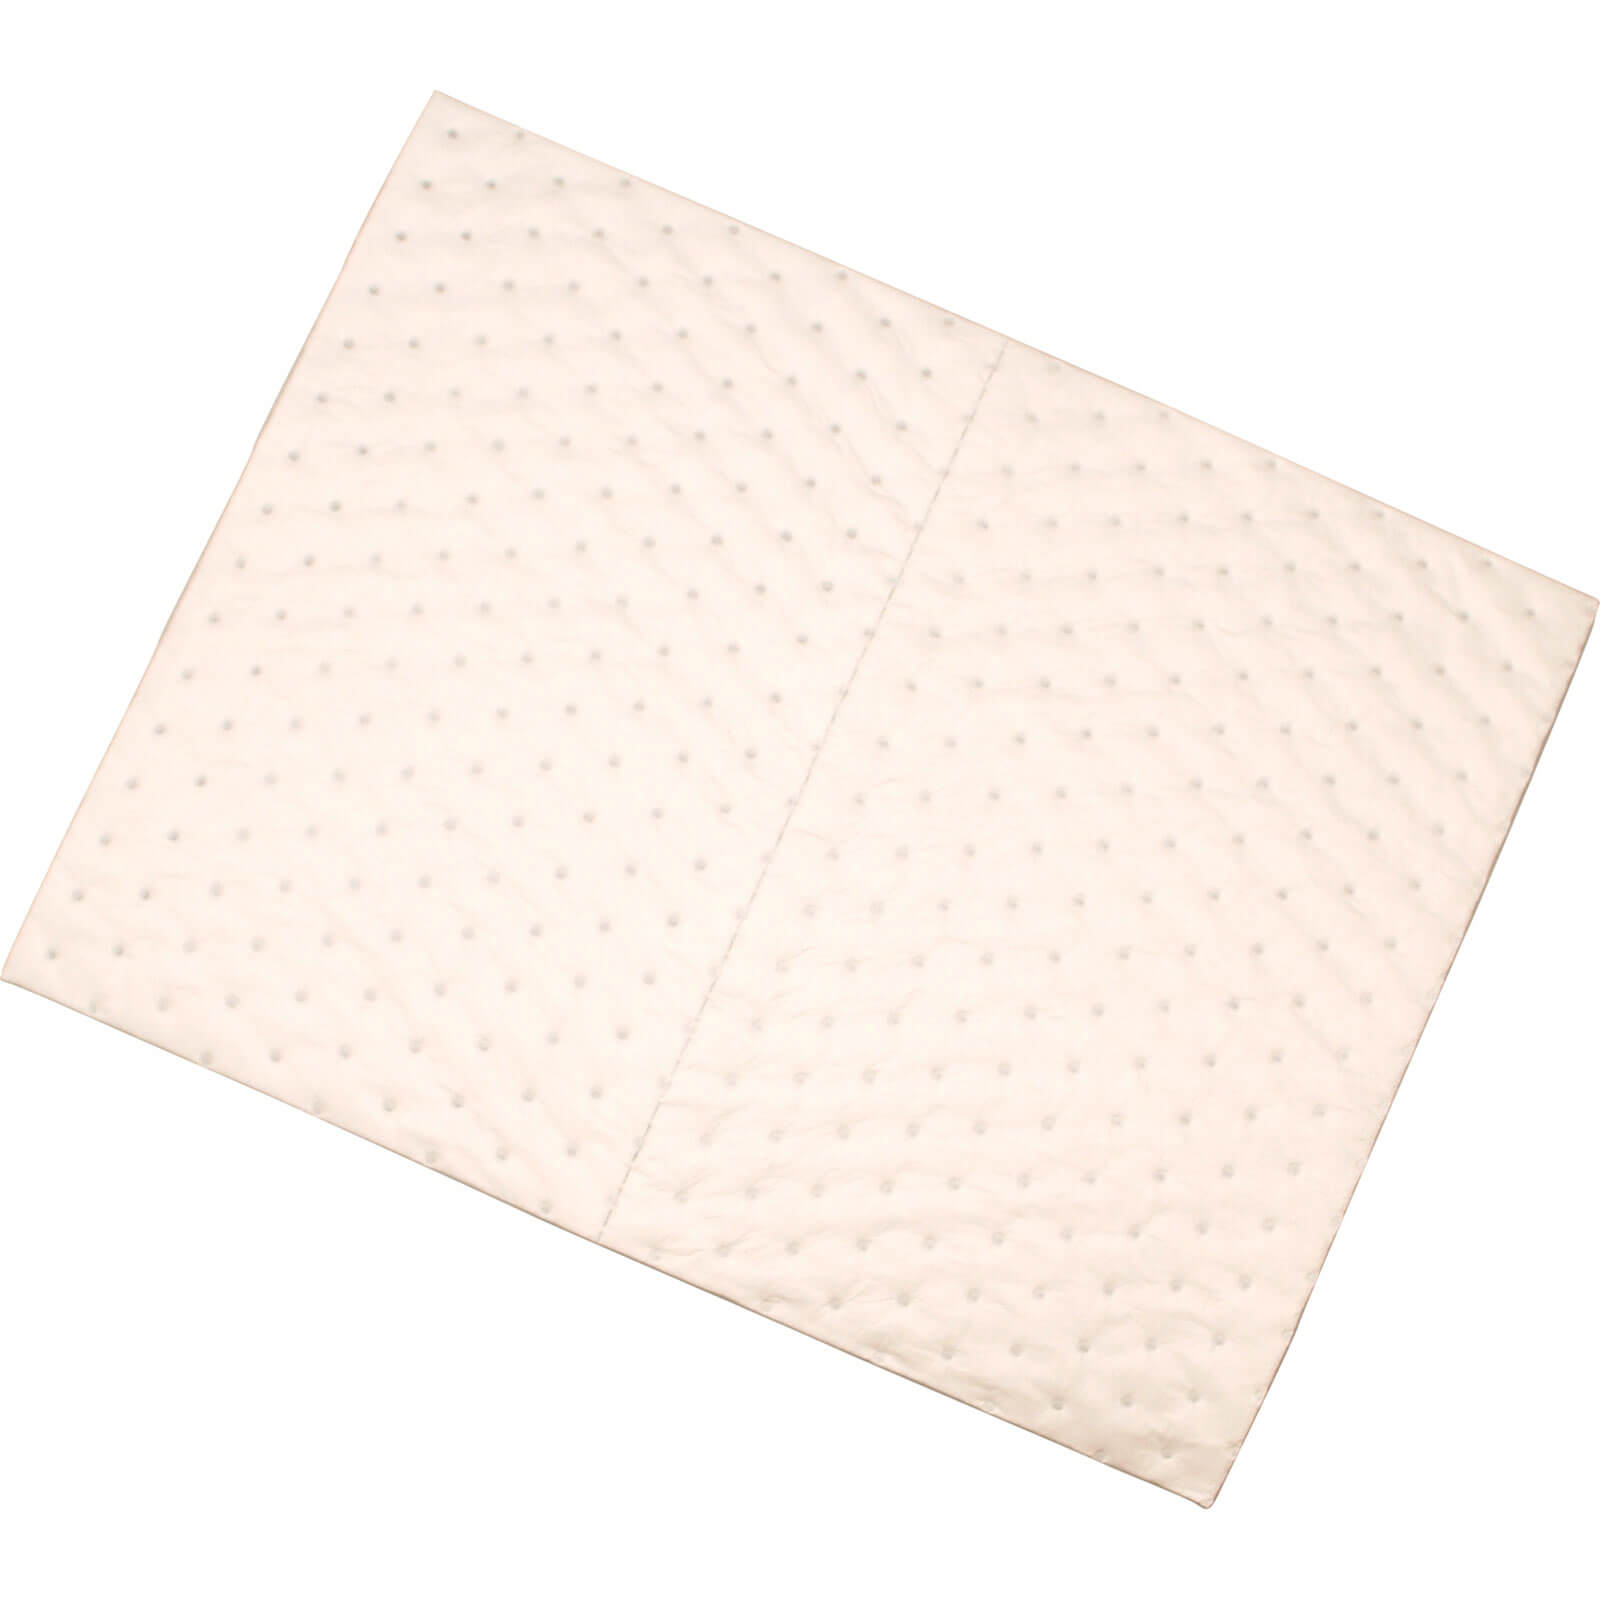 Image of Scan Oil & Fuel Absorbent Pads Pack of 10